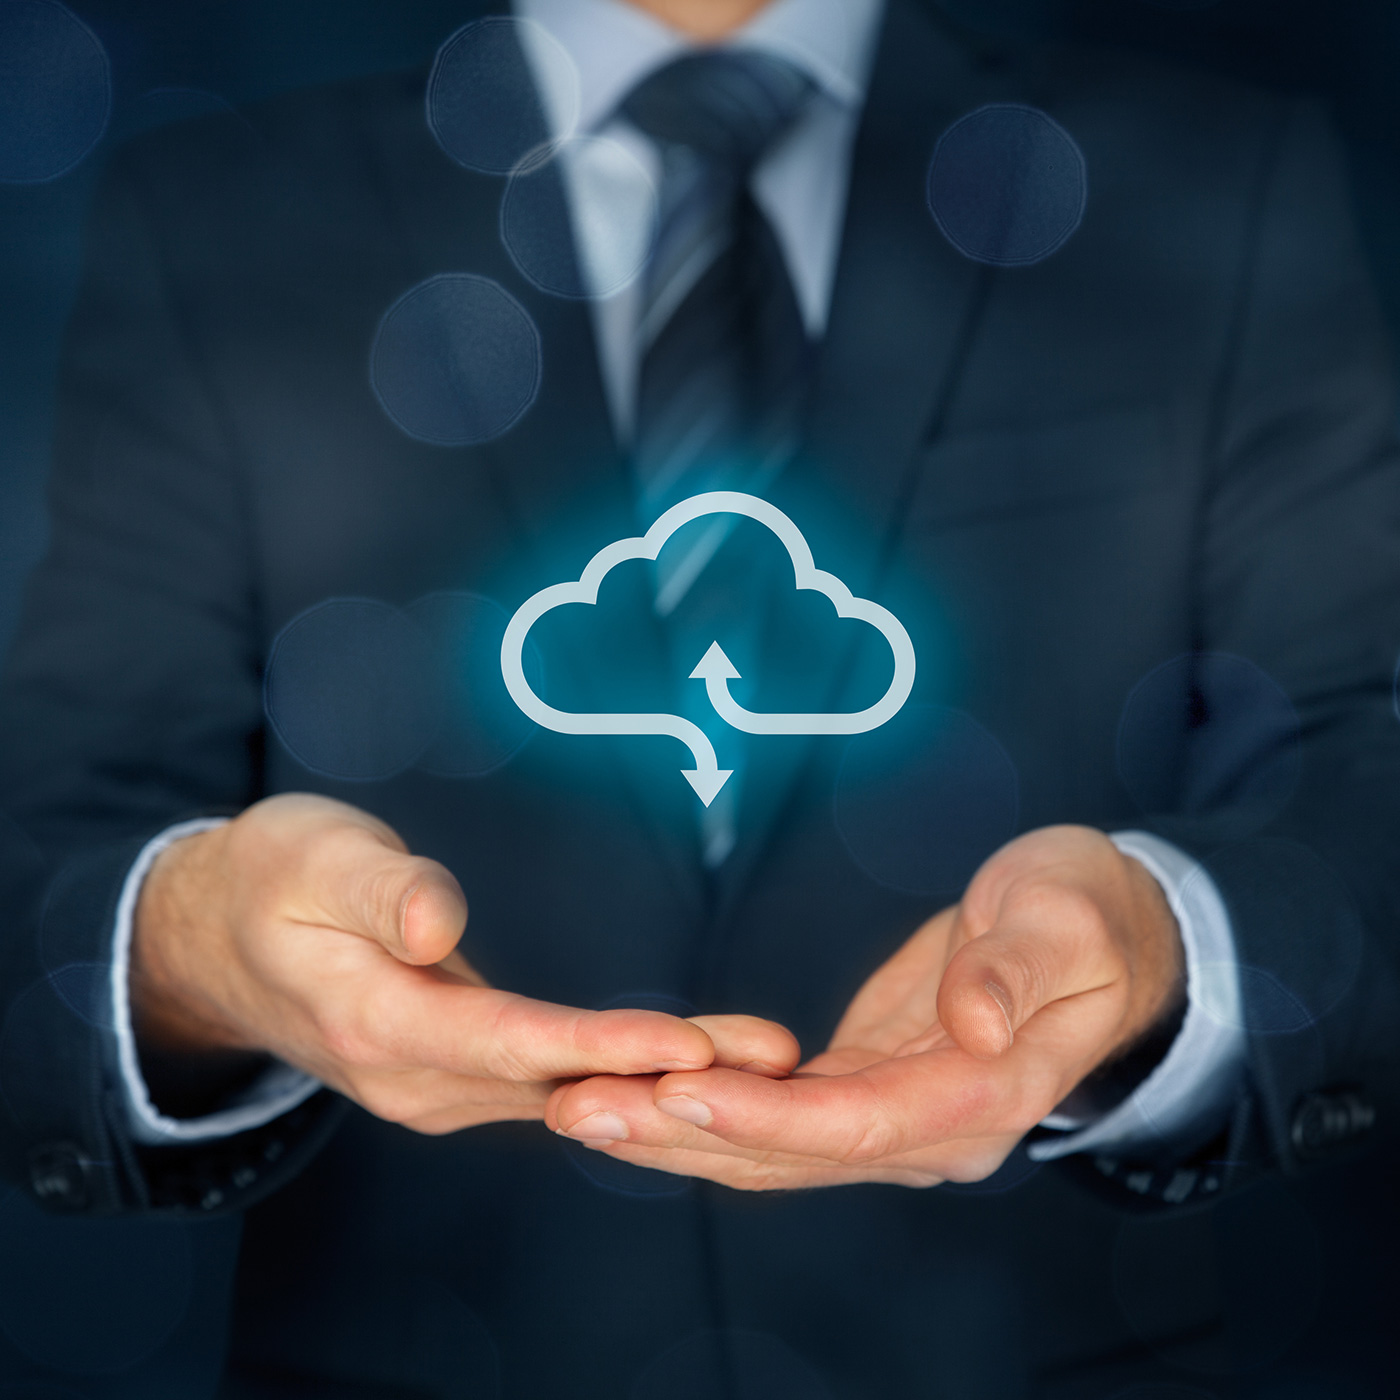 A stock image showing a man in a suit with his hands out and a symbol for cloud computing just above his hands.